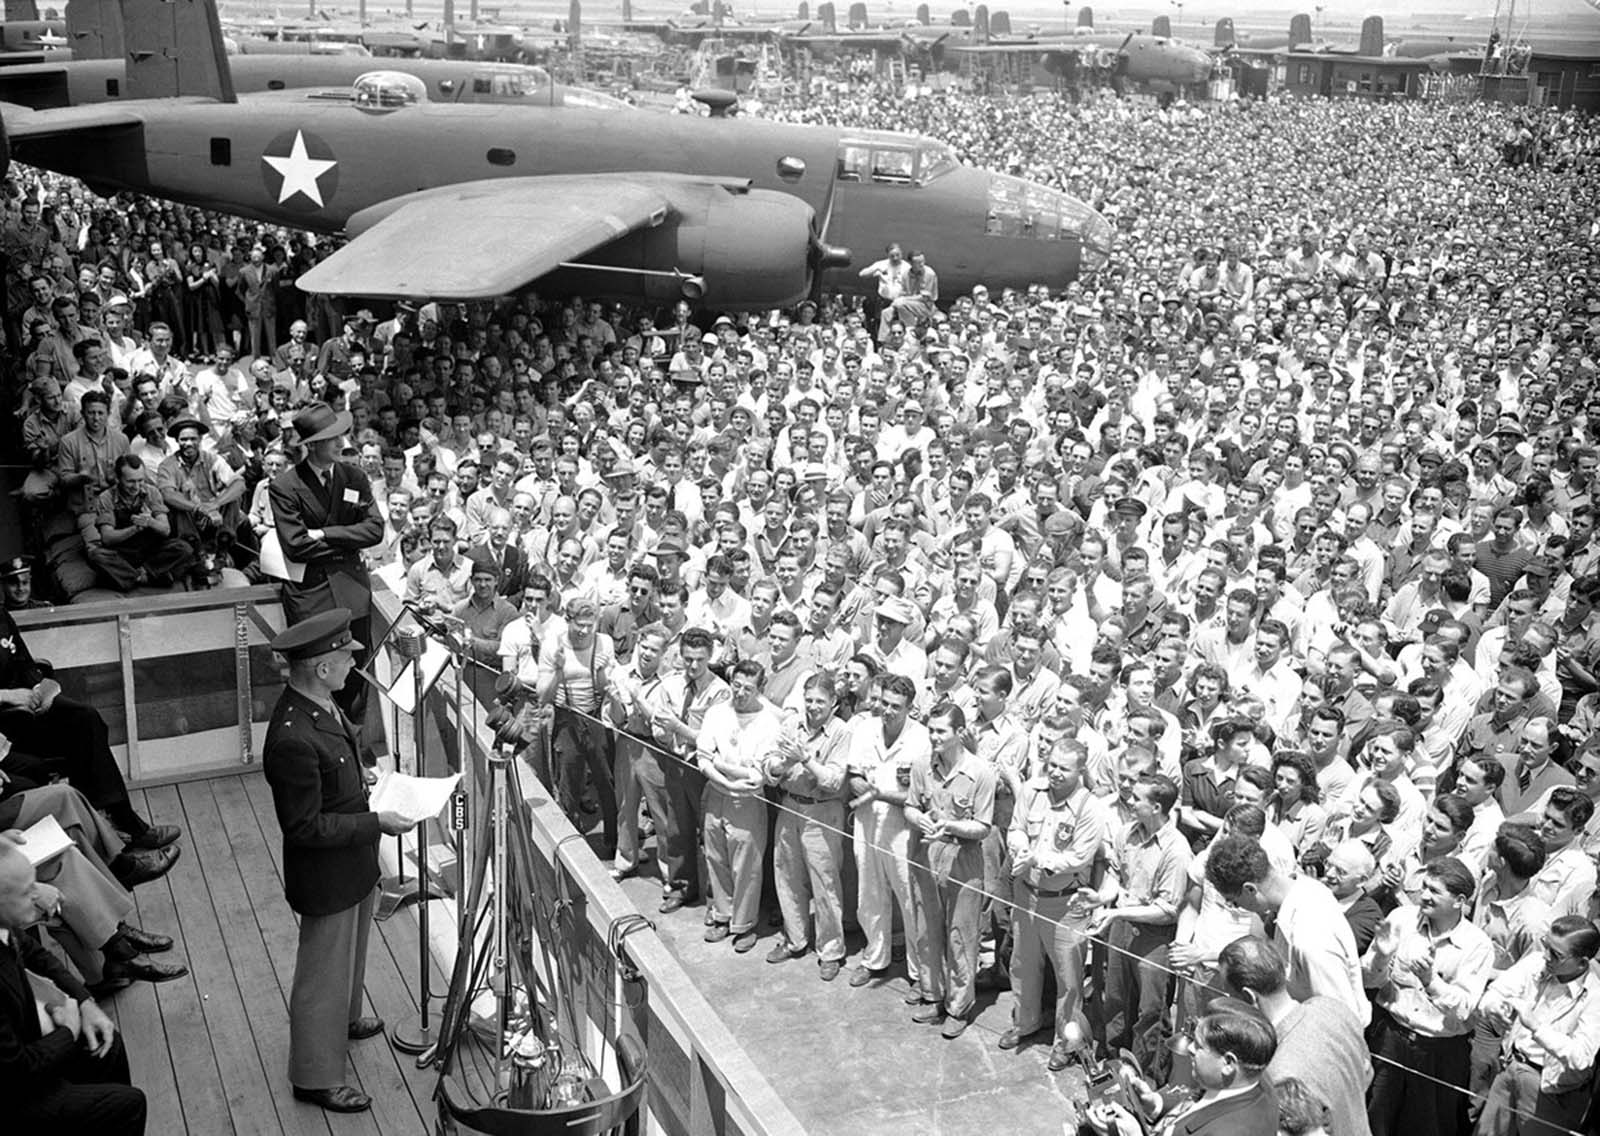 Lt. Col. James Doolittle, who led the April, 1942 air raid on Tokyo, addresses a throng of aircraft workers at the North American Aviation plant on June 1, 1942. He said that